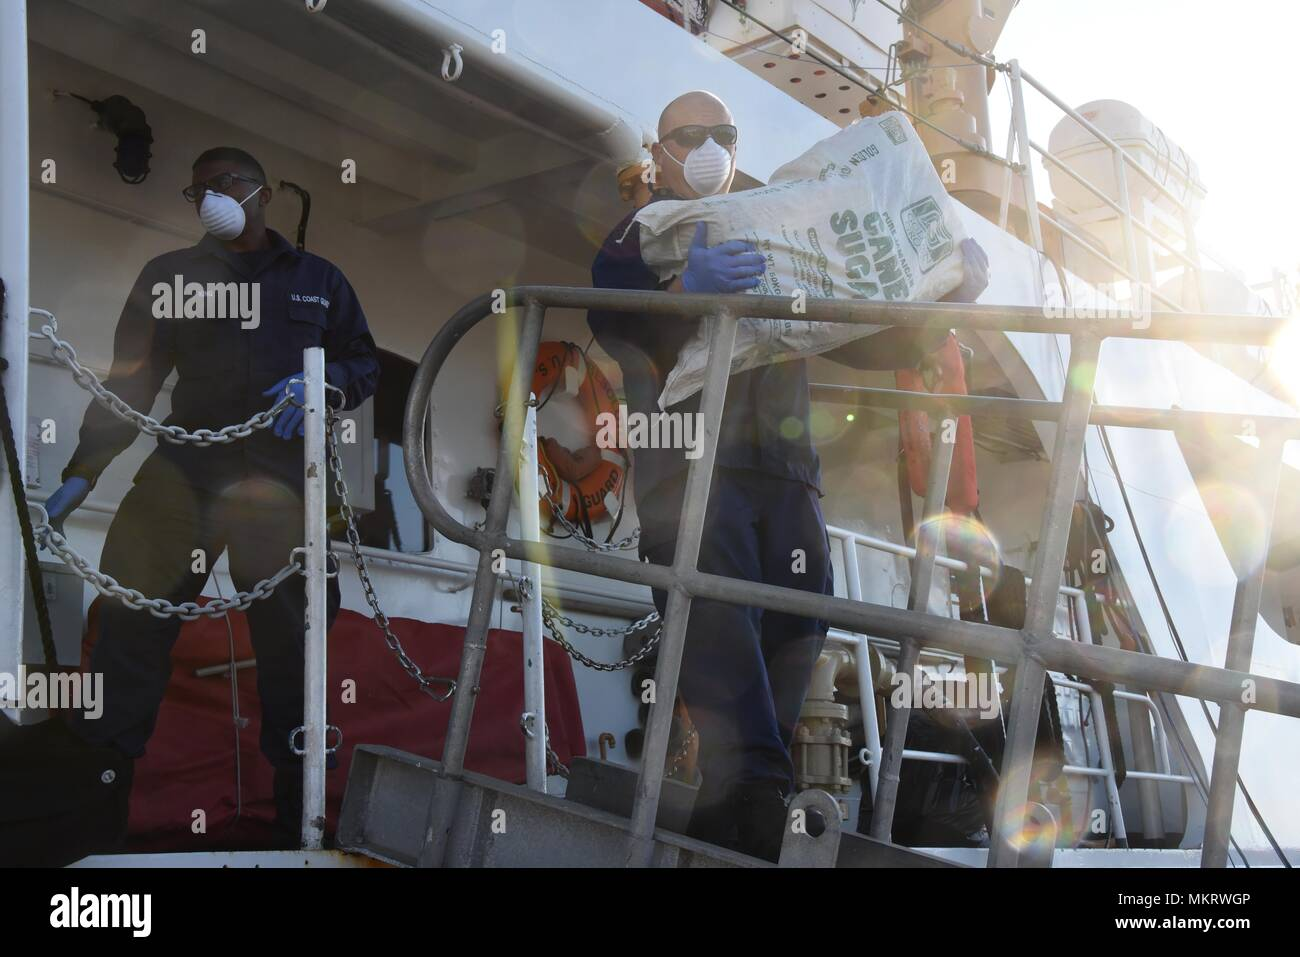 Coast Guard Cutter Resolute crewmembers offload approximately 1 ton of marijuana worth an estimated $2.2 million wholesale value, in St. Petersburg, Florida, Tuesday, May 8, 2018, May 8, 2018. The crew aboard the 210-foot Reliance-class cutter, homeported in St. Petersburg, interdicted two suspected drug smuggling vessels and detained seven suspected drug smugglers in the Caribbean Sea with the assistance of Customs and Border Patrol as part of Operation Riptide. (U.S. Coast Guard photo by Petty Officer 2nd Class Ashley J. Johnson). () - Stock Image